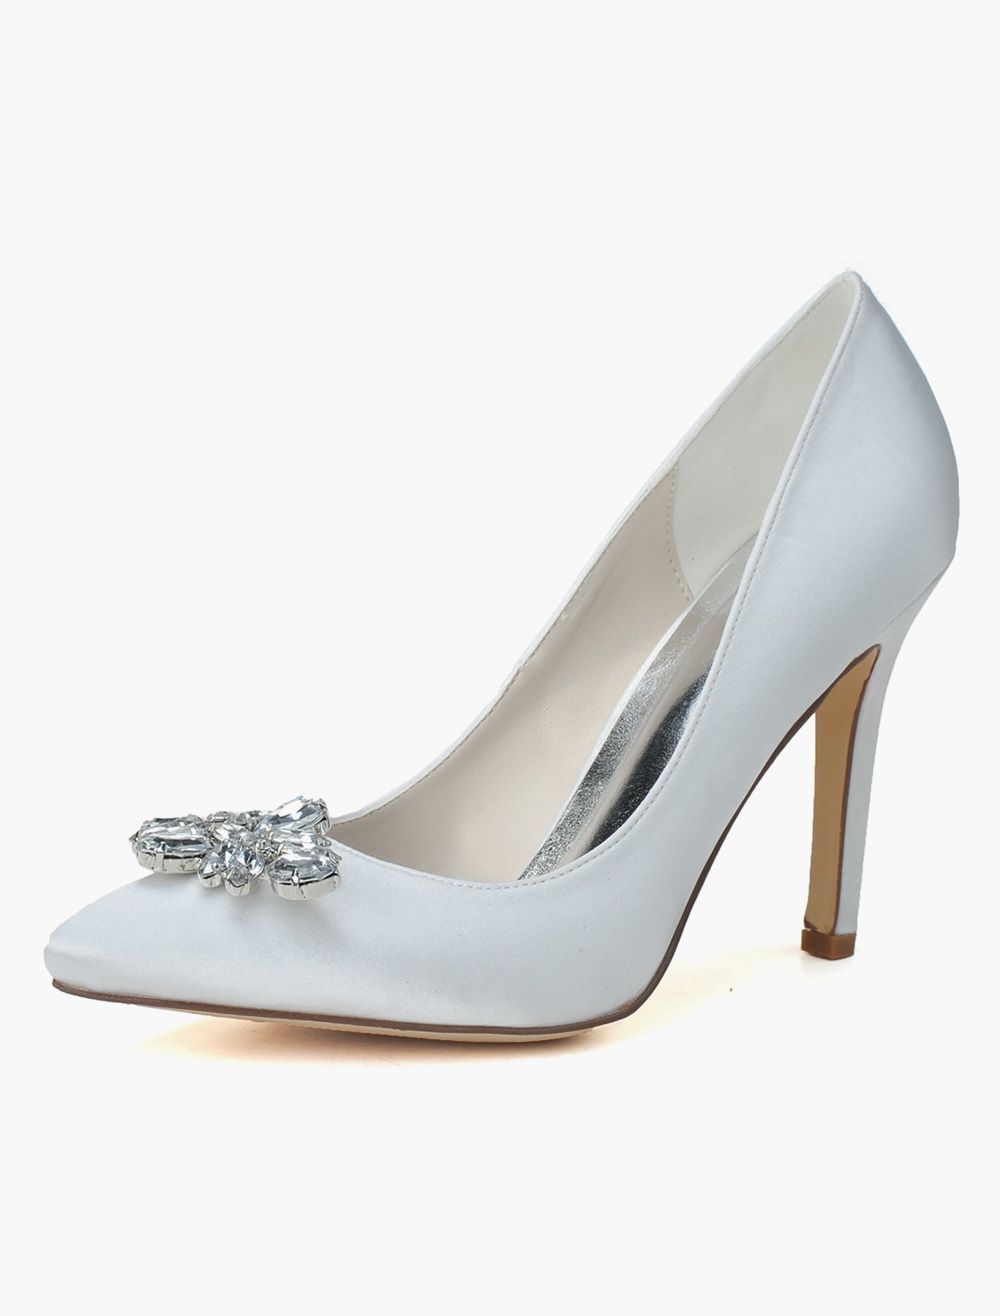 Buy Satin Rhinestones Pointed Toe Pumps For Bride for $47.49 in Milanoo store